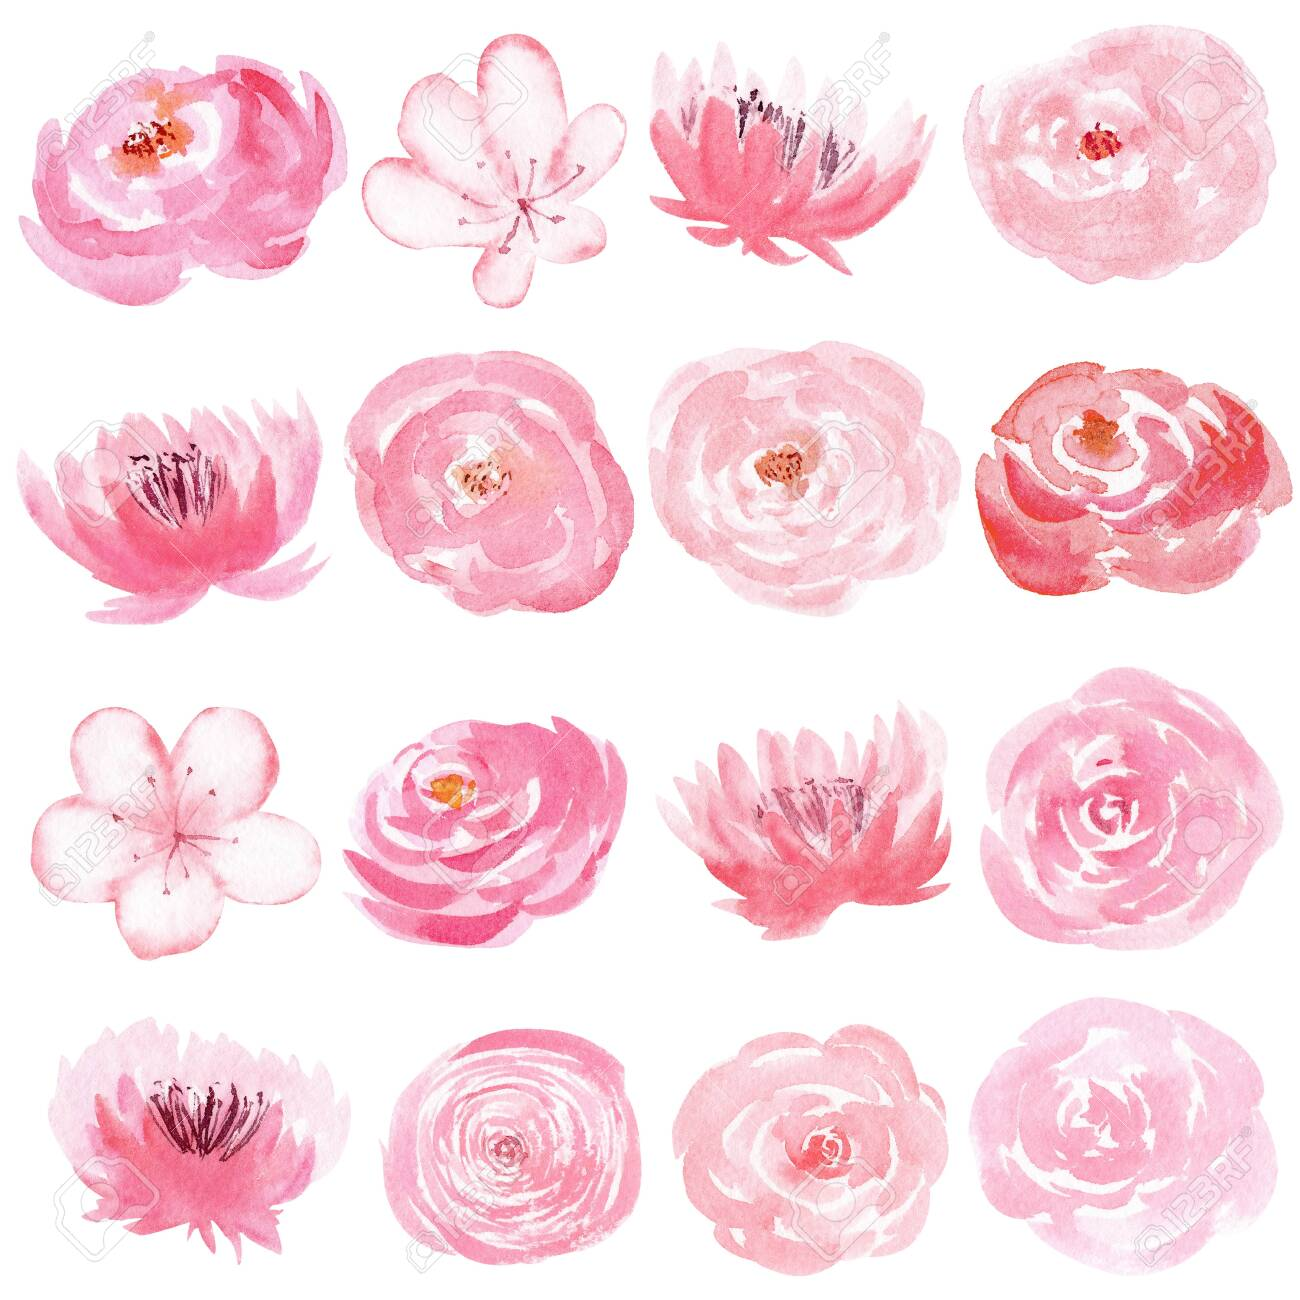 Set Of Hand Painted Watercolor Flowers In Pastel Pink Color Stock Photo Picture And Royalty Free Image Image 124479831